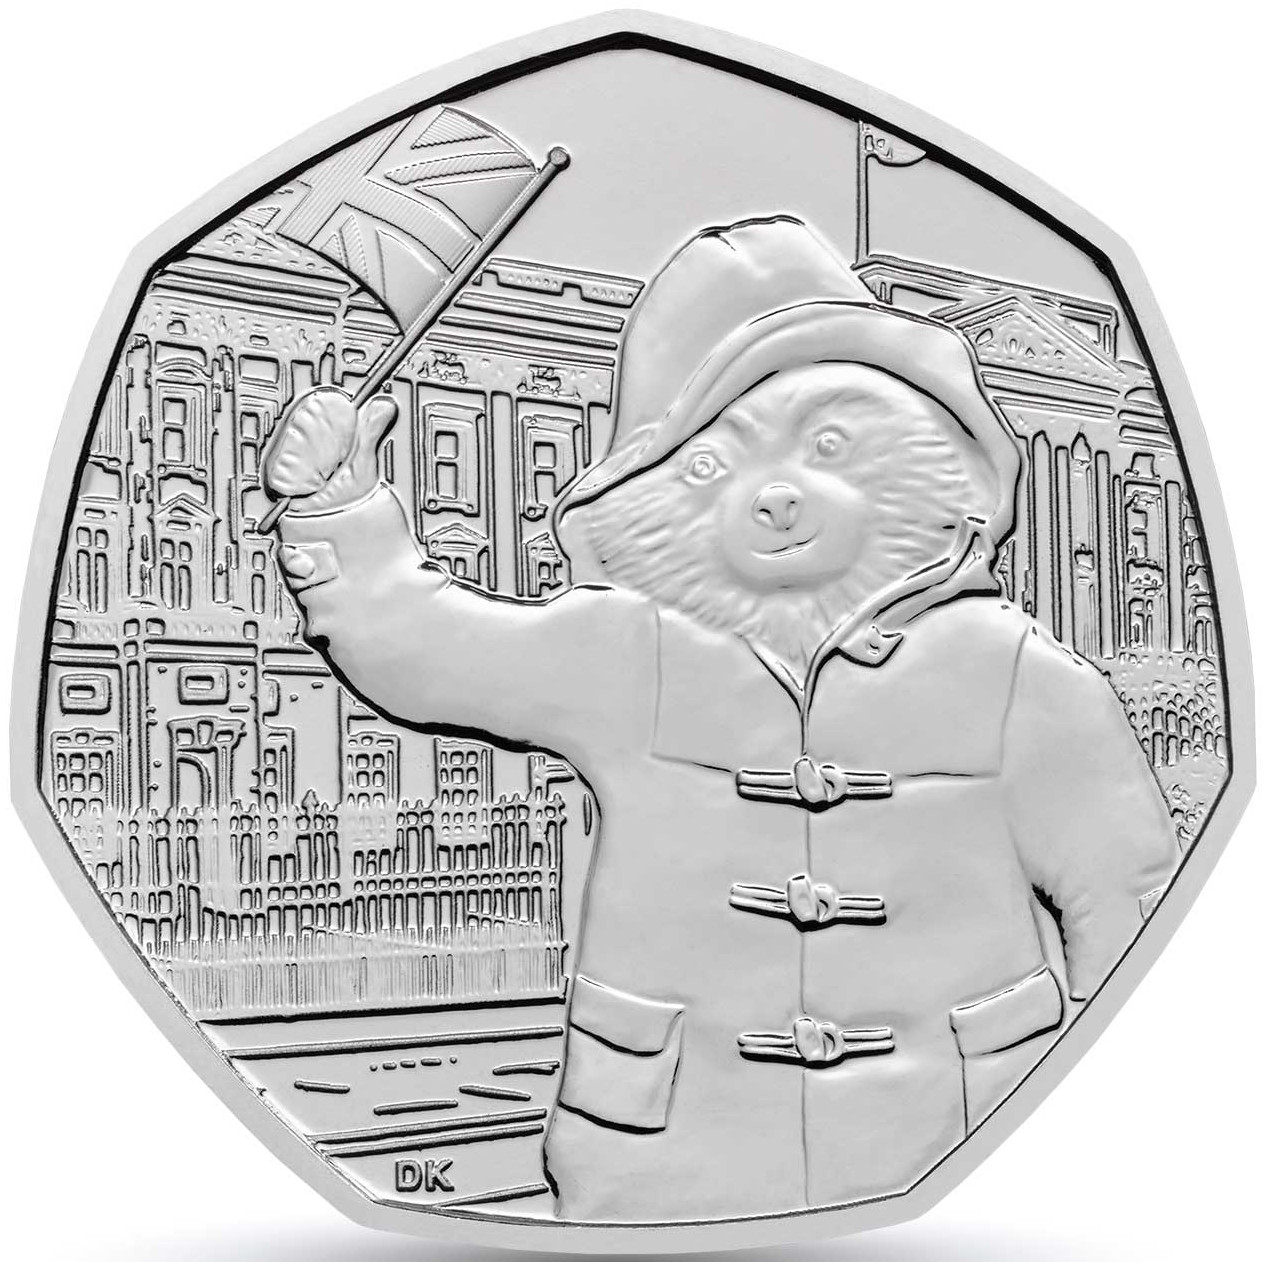 Fifty Pence 2018 Paddington Bear at Buckingham Palace: Photo Paddington at Buckingham Palace 2018 UK 50p Brilliant Uncirculated Coin